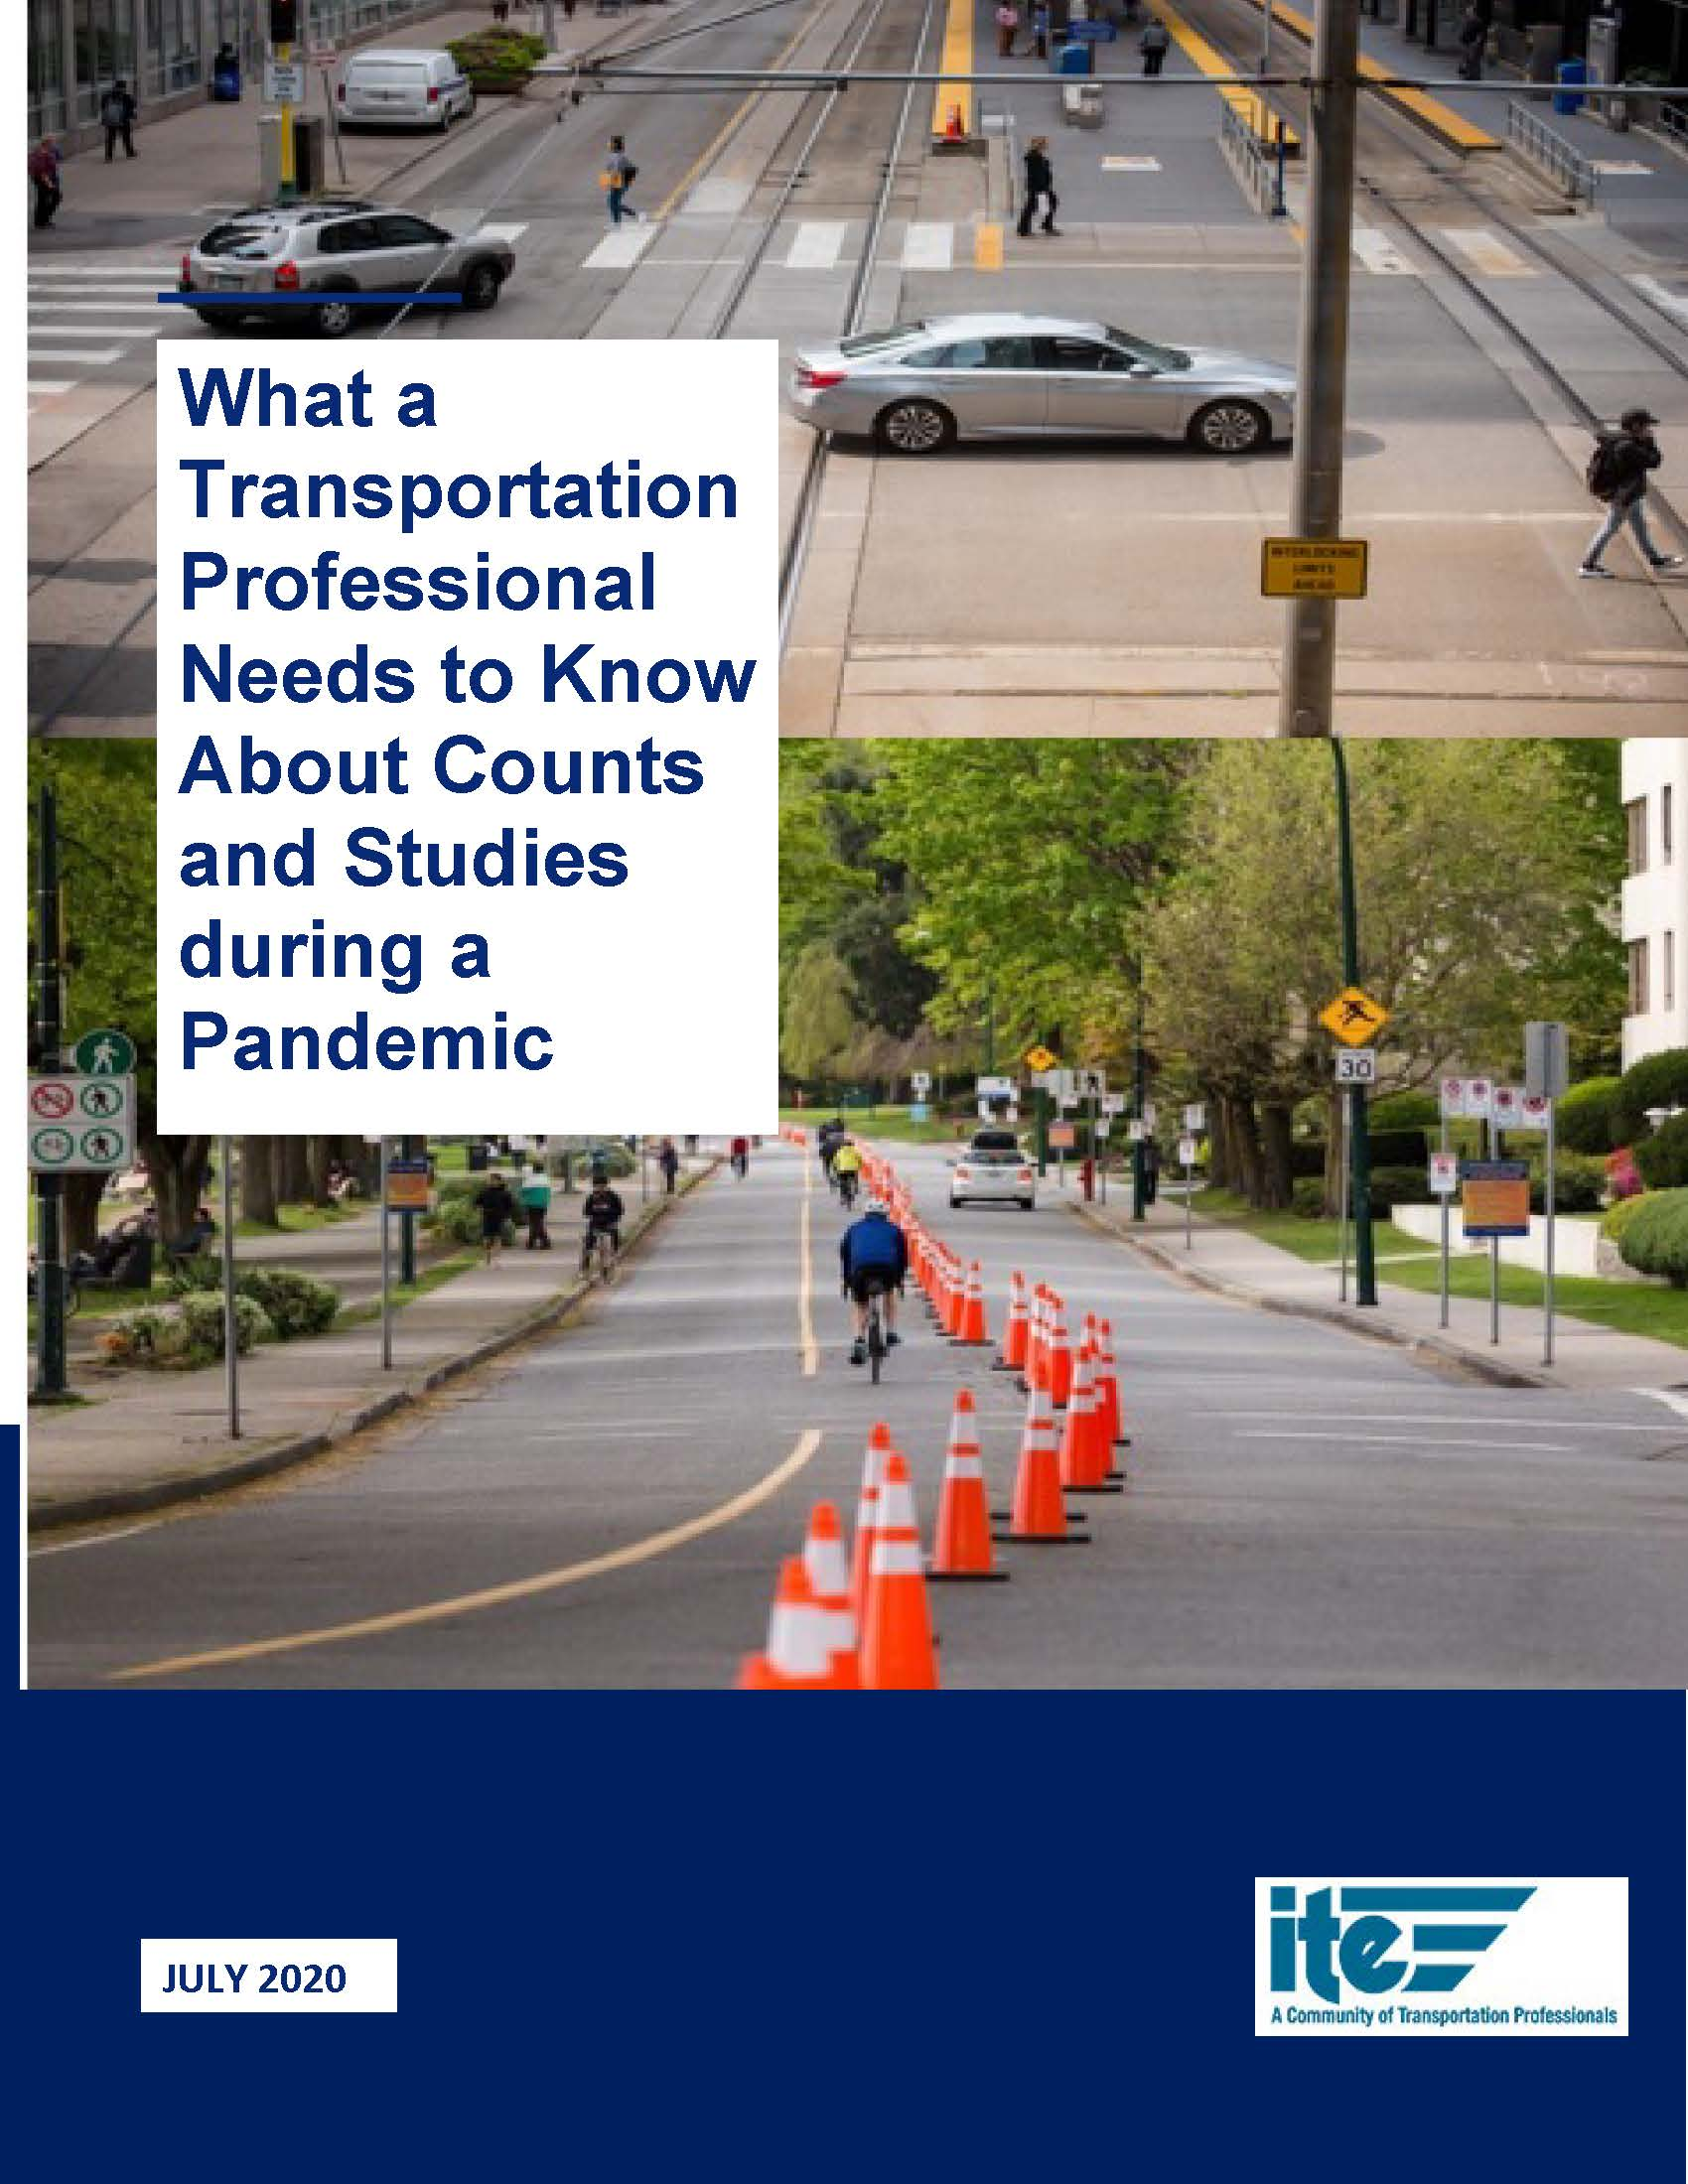 Counts and Studies during a Pandemic